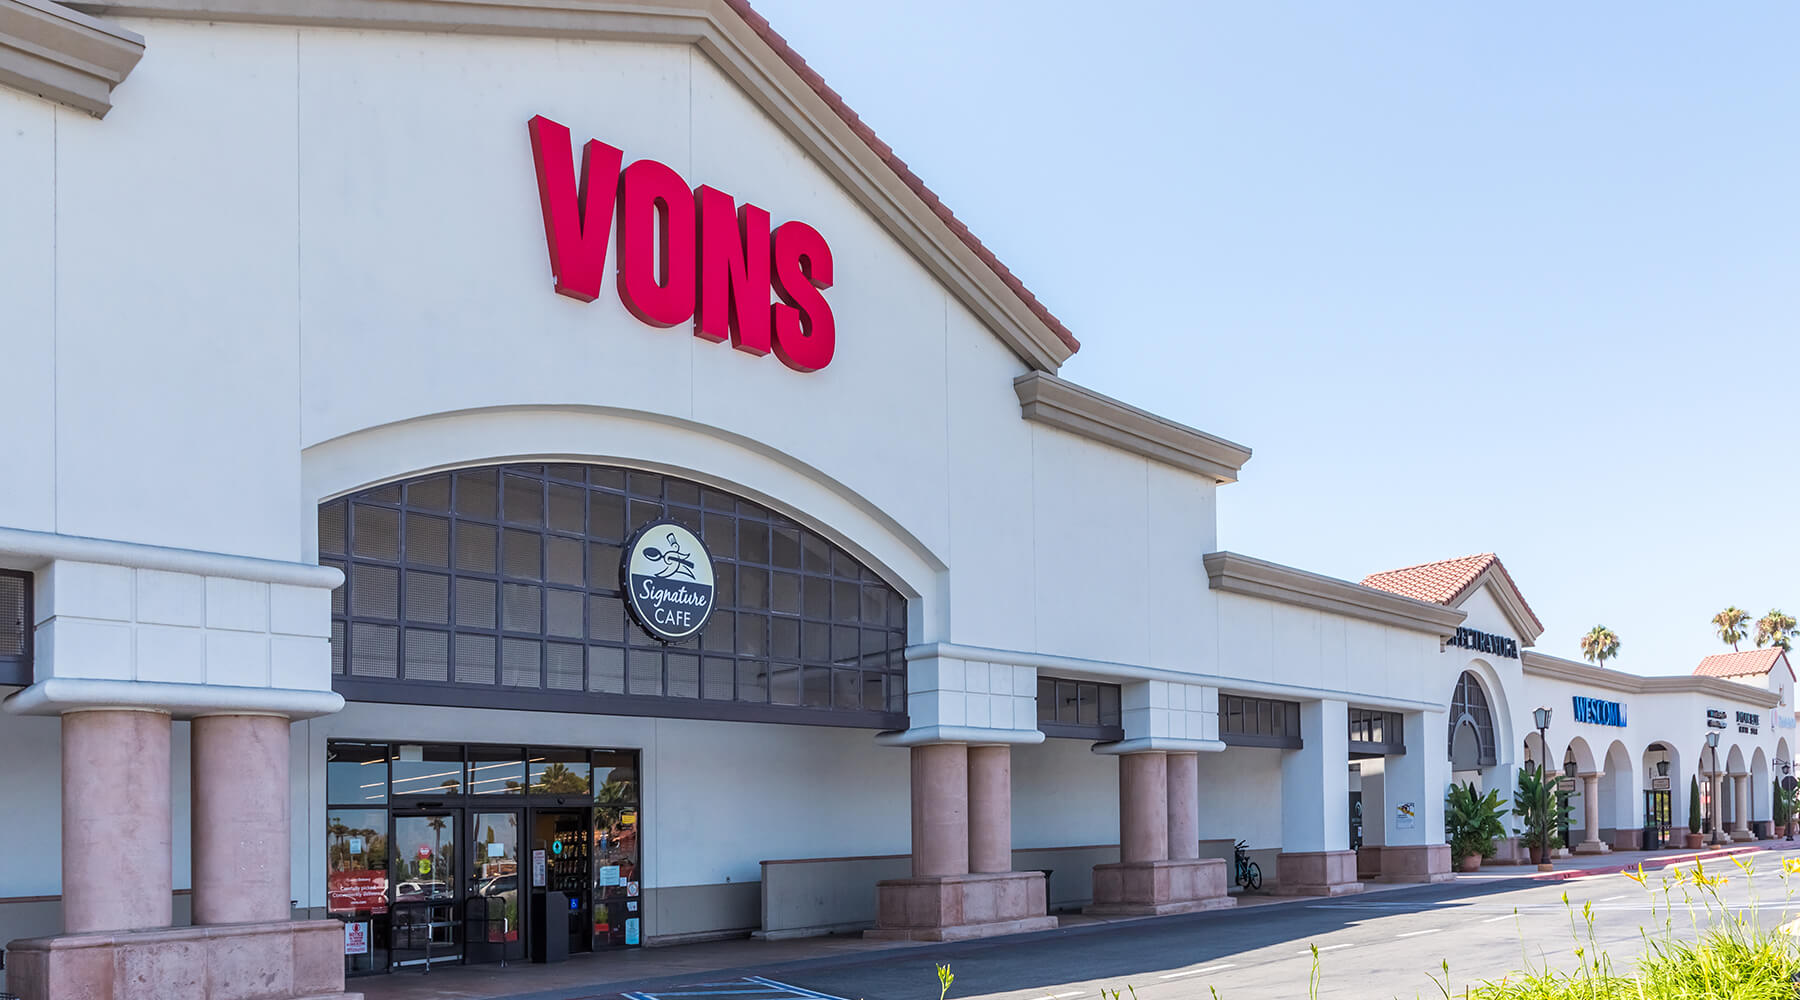 The Shops at Mesa Verde Vons